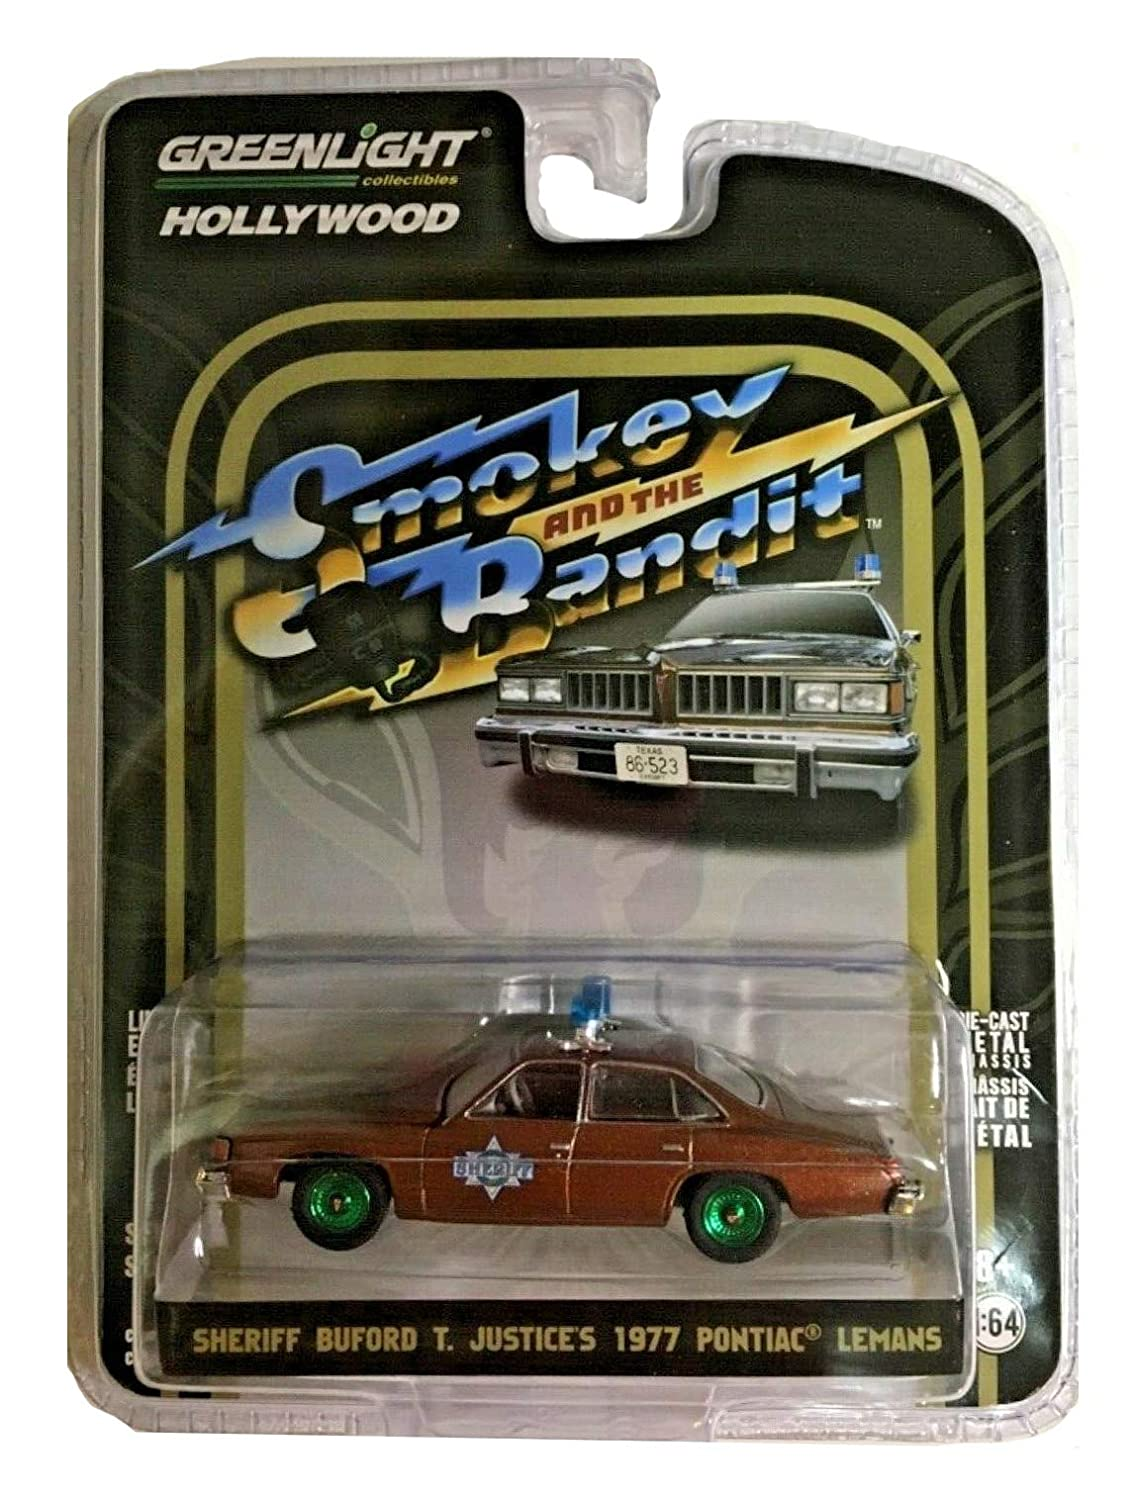 Greenlight Sheriff Buford T Justices 1977 Pontiac  limited edition  1-64 scale